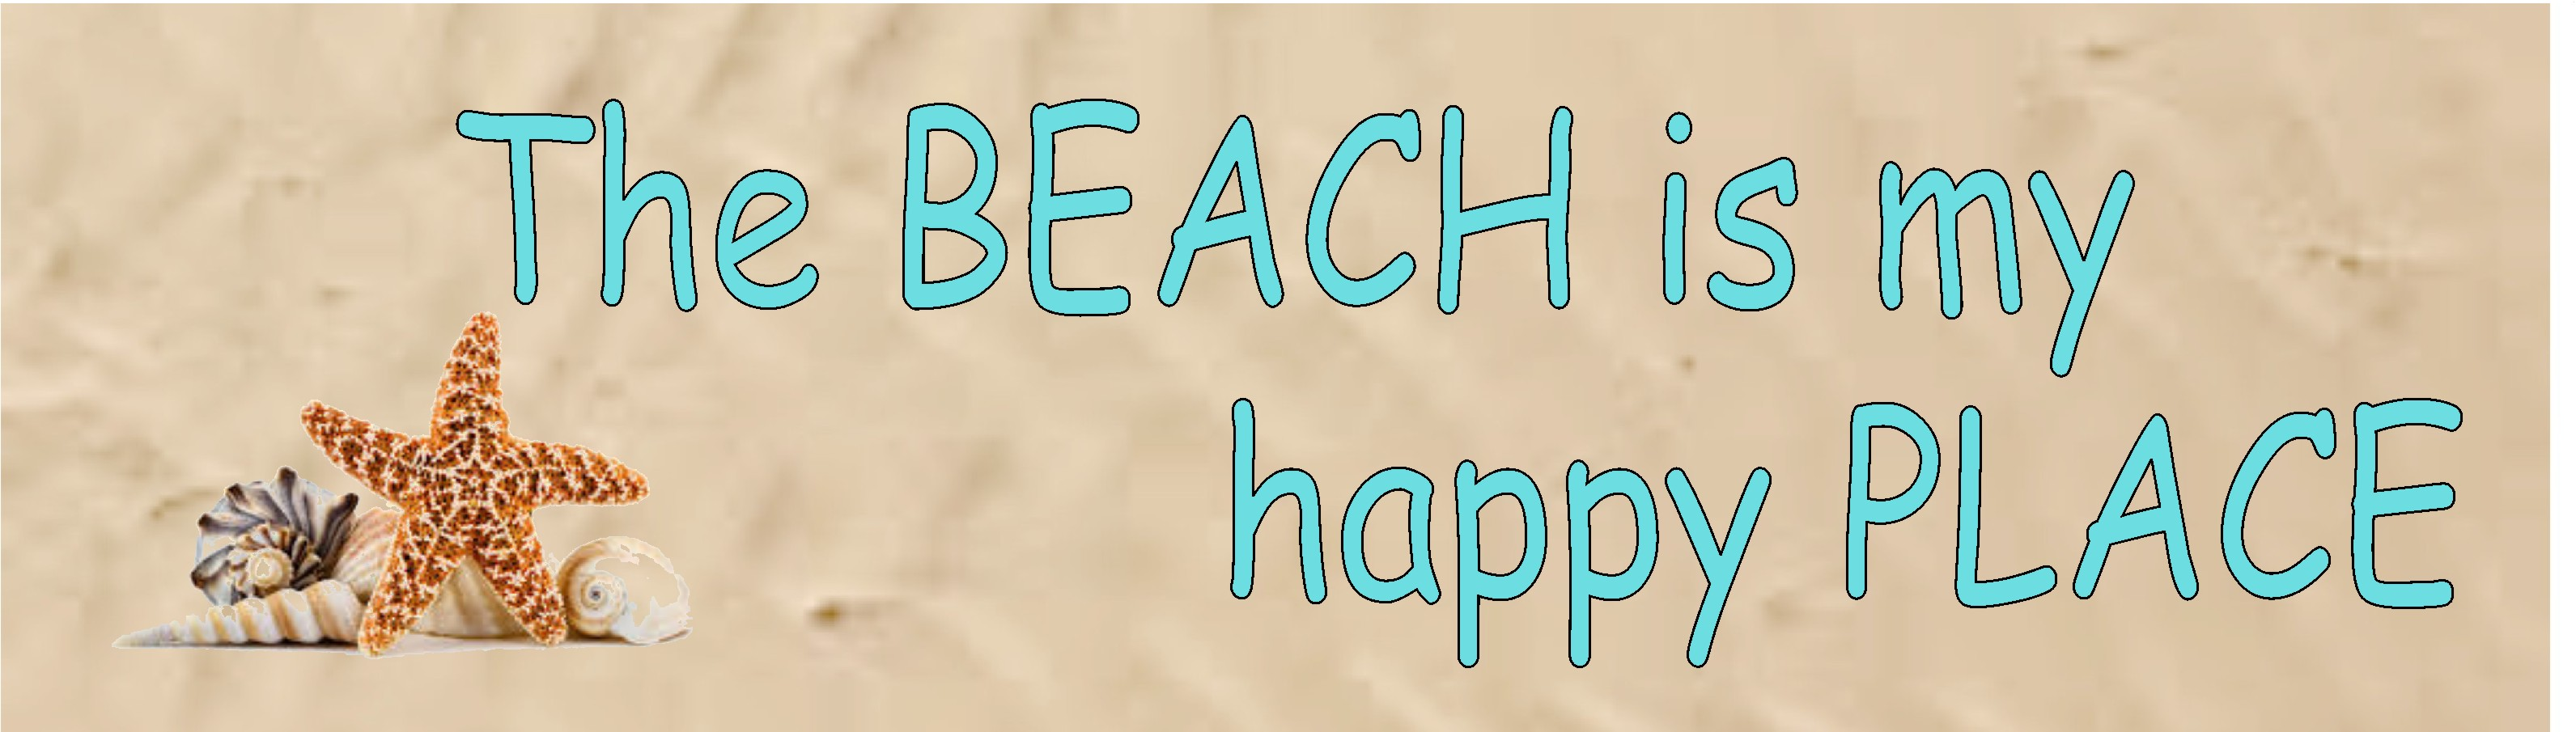 """THE BEACH IS MY HAPPY PLACE 10.5"""" X 3"""" WOODEN BLOCK SIGN"""